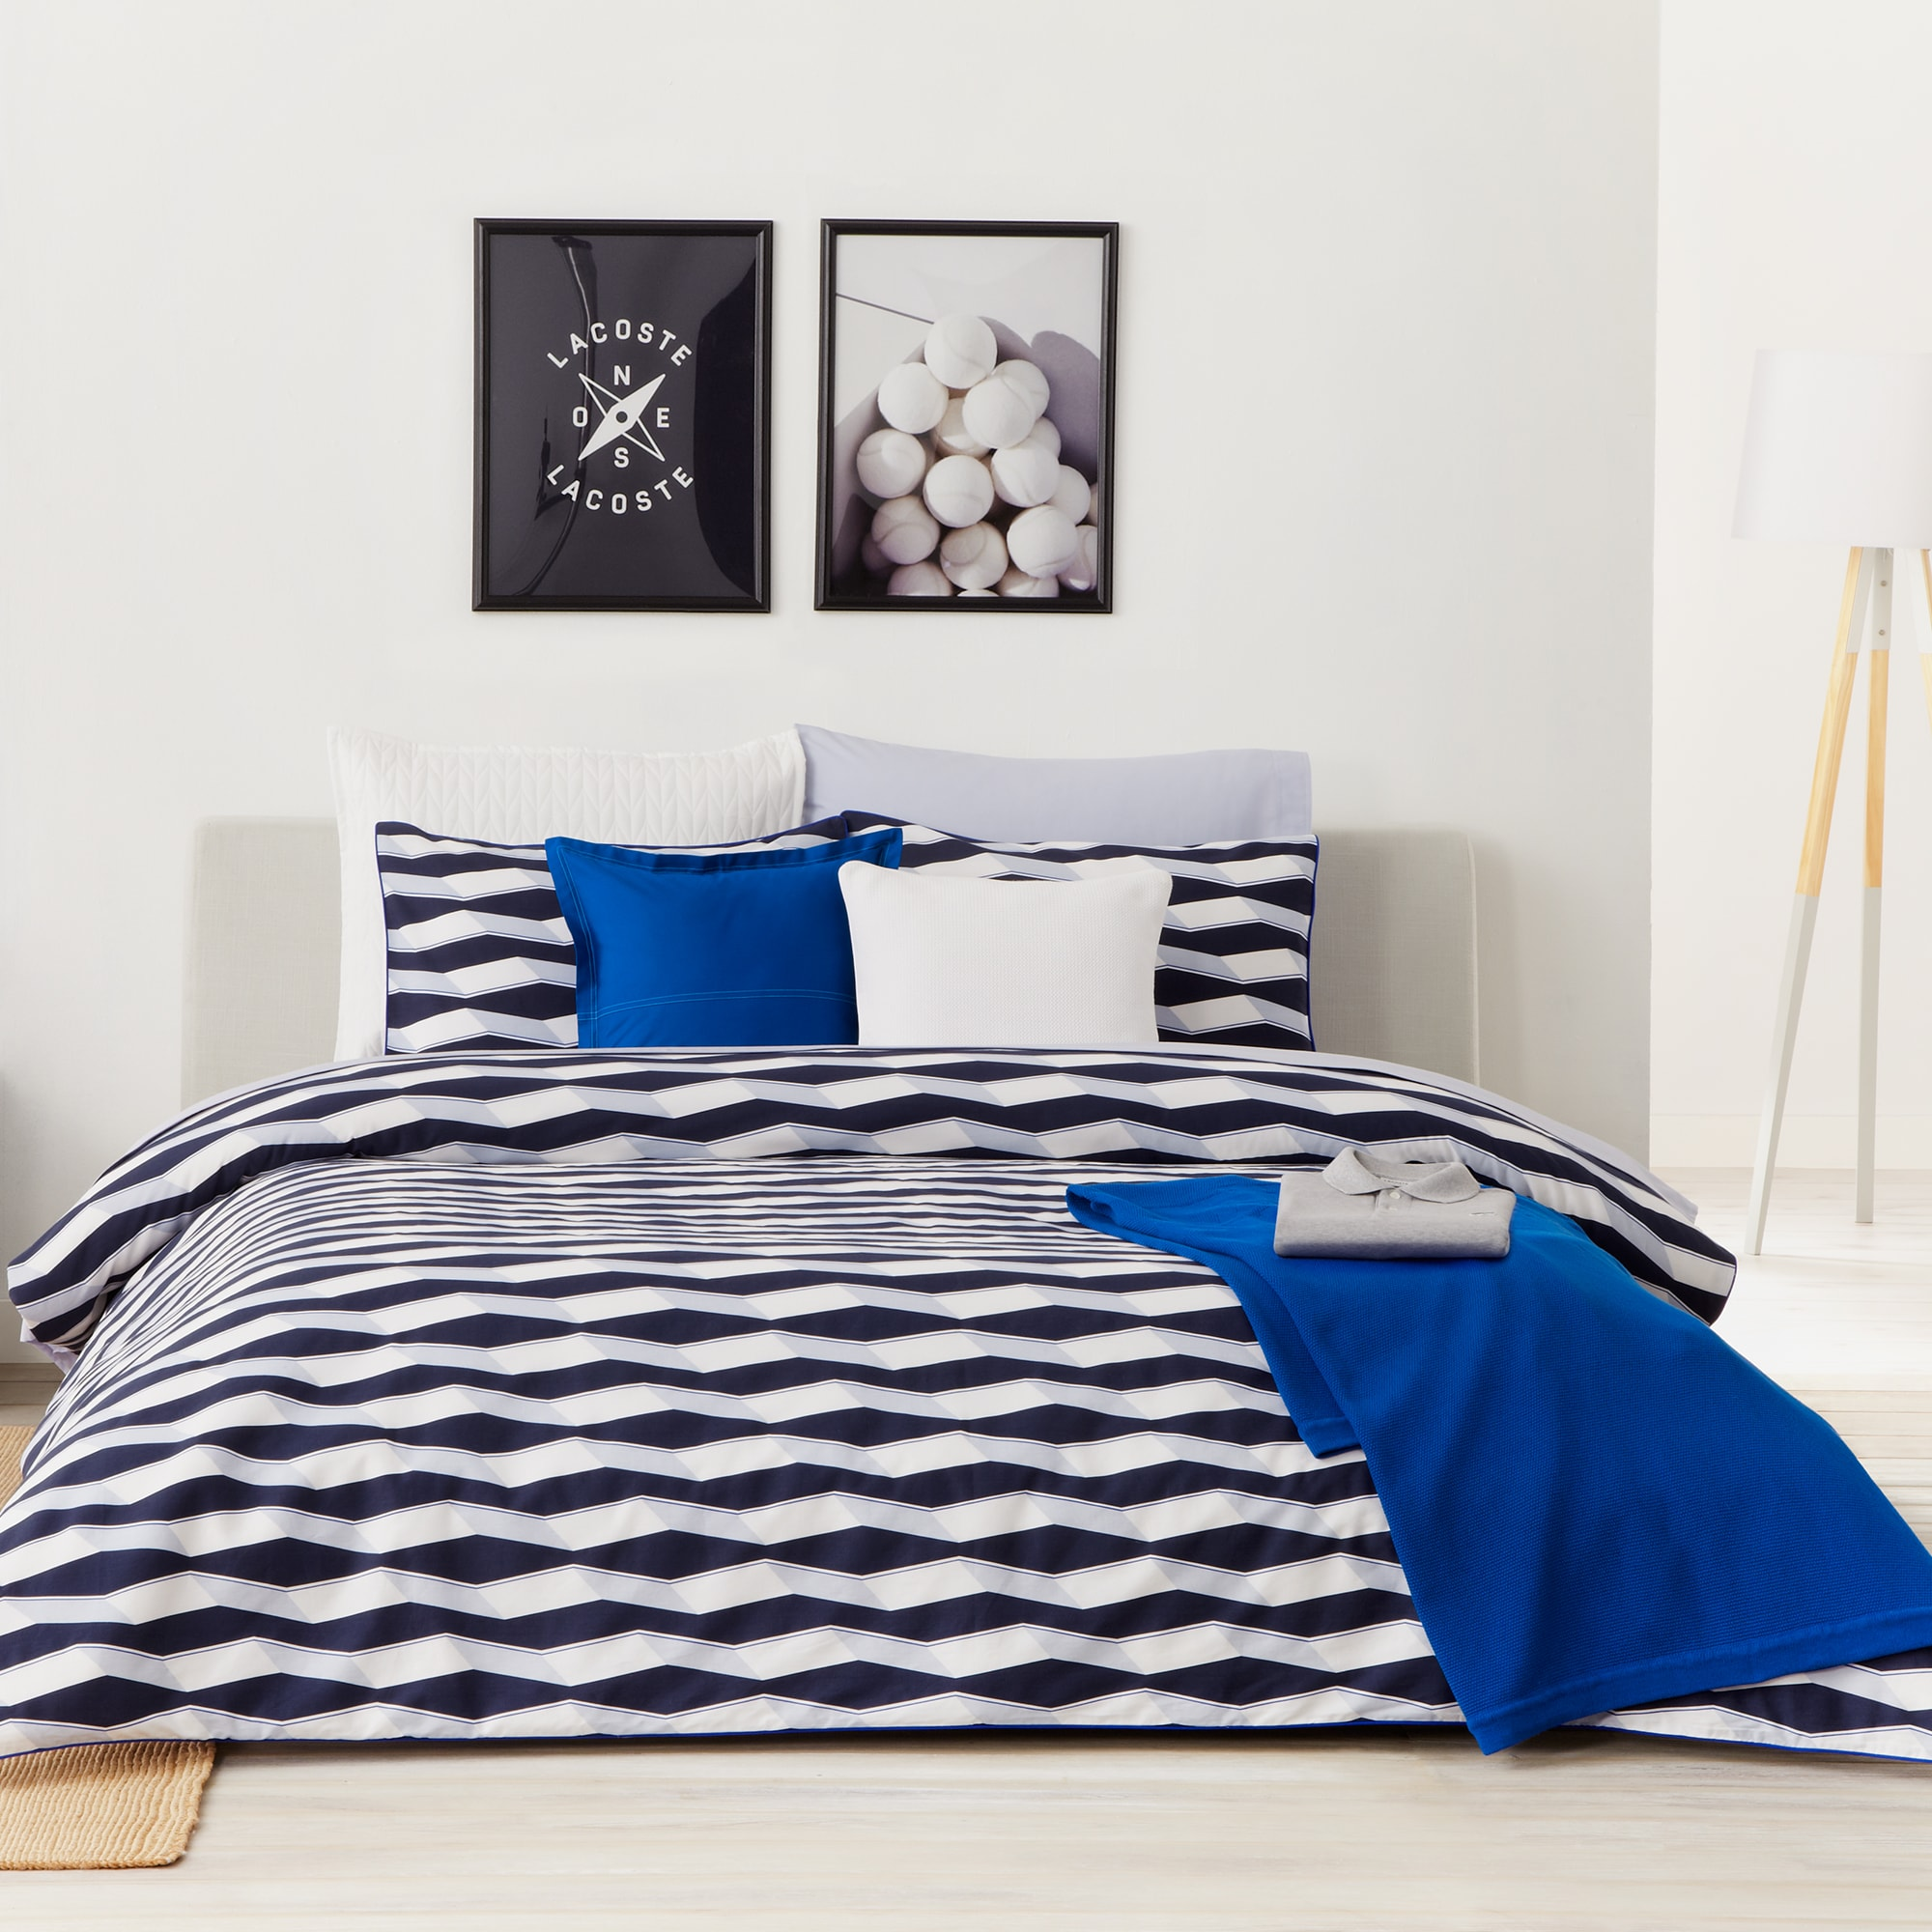 cover large amaki lacoste of info bed sheets comforter duvet size set full